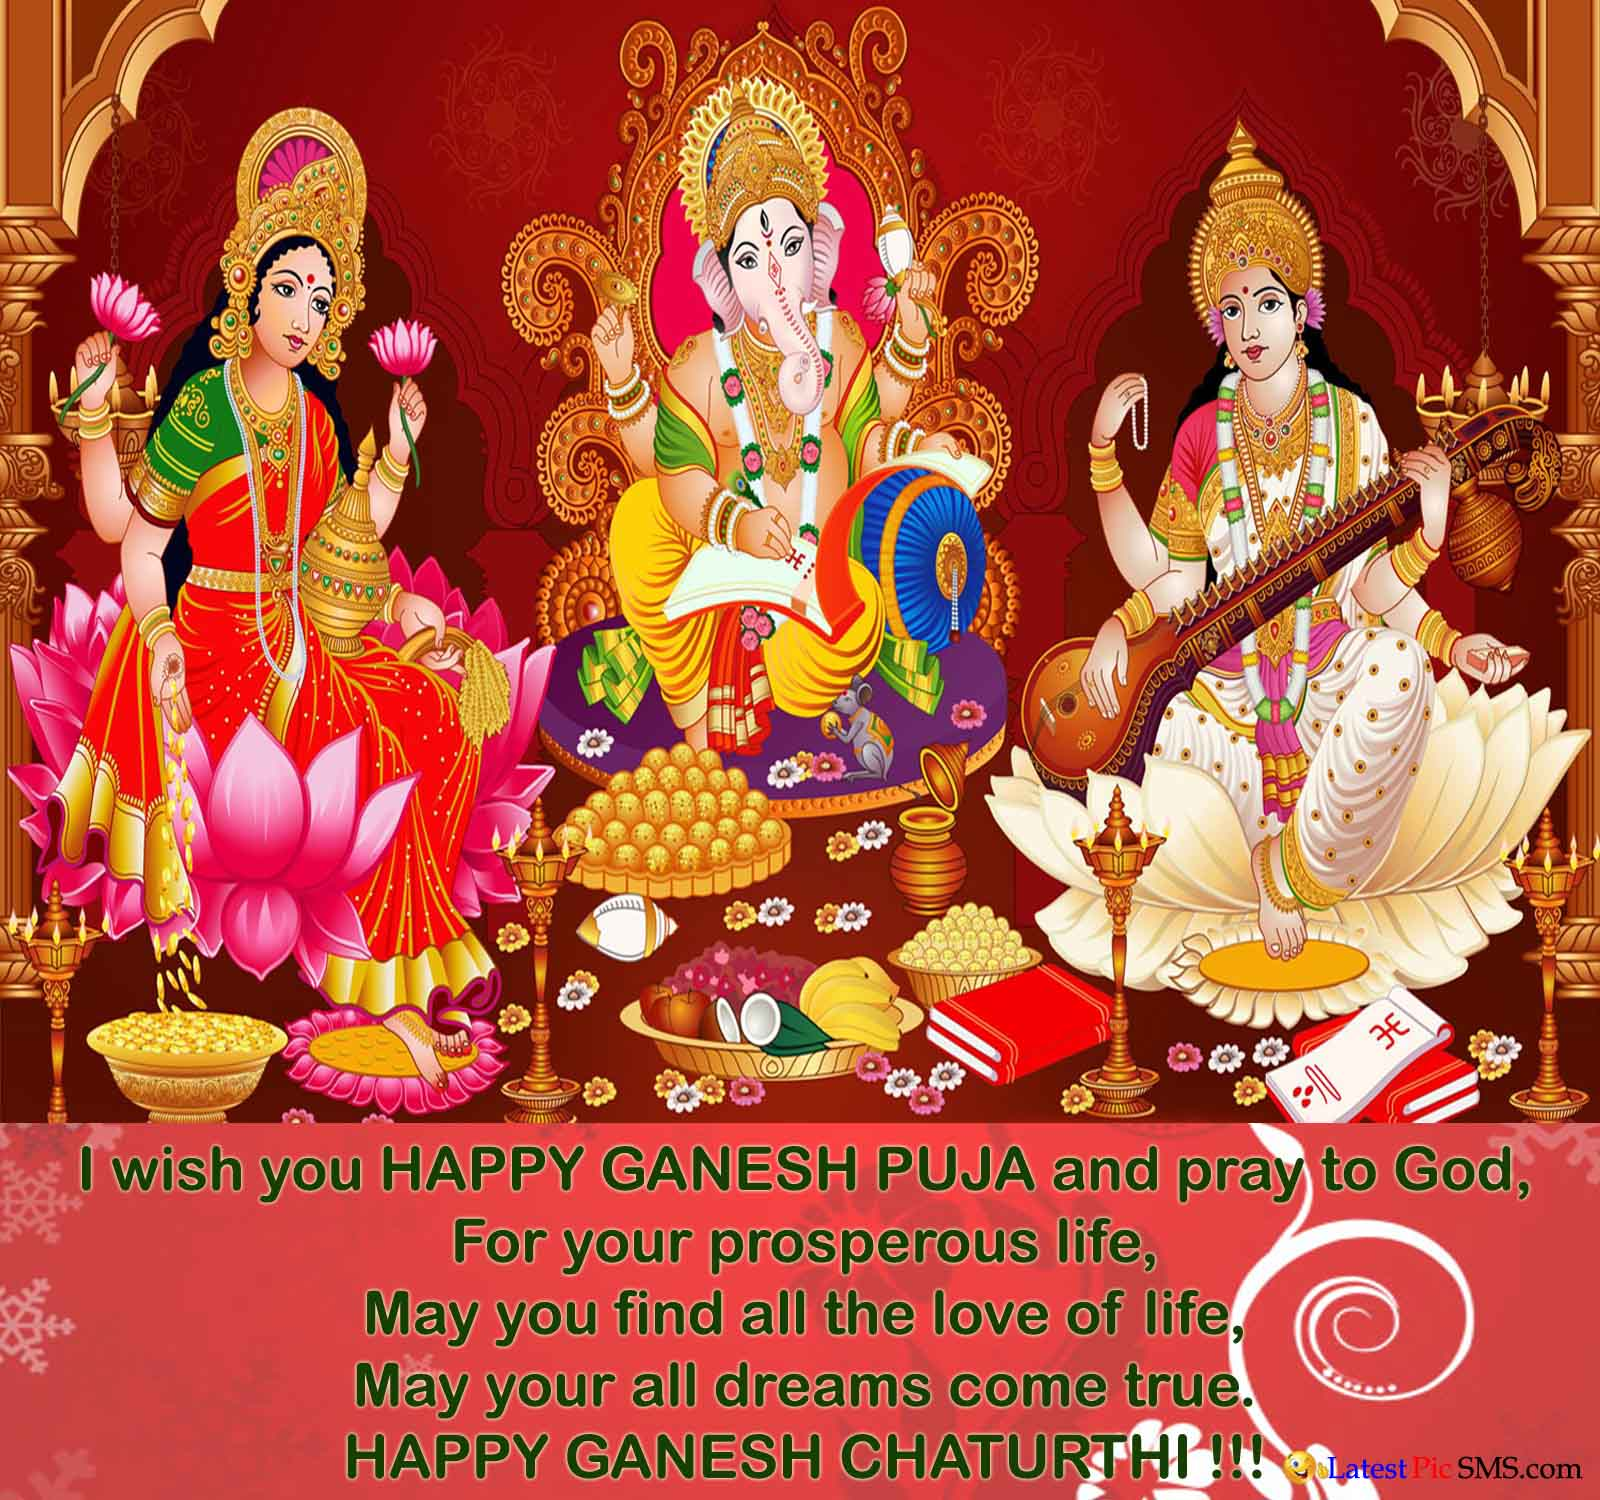 Greetings on ganesh chaturthi Photo